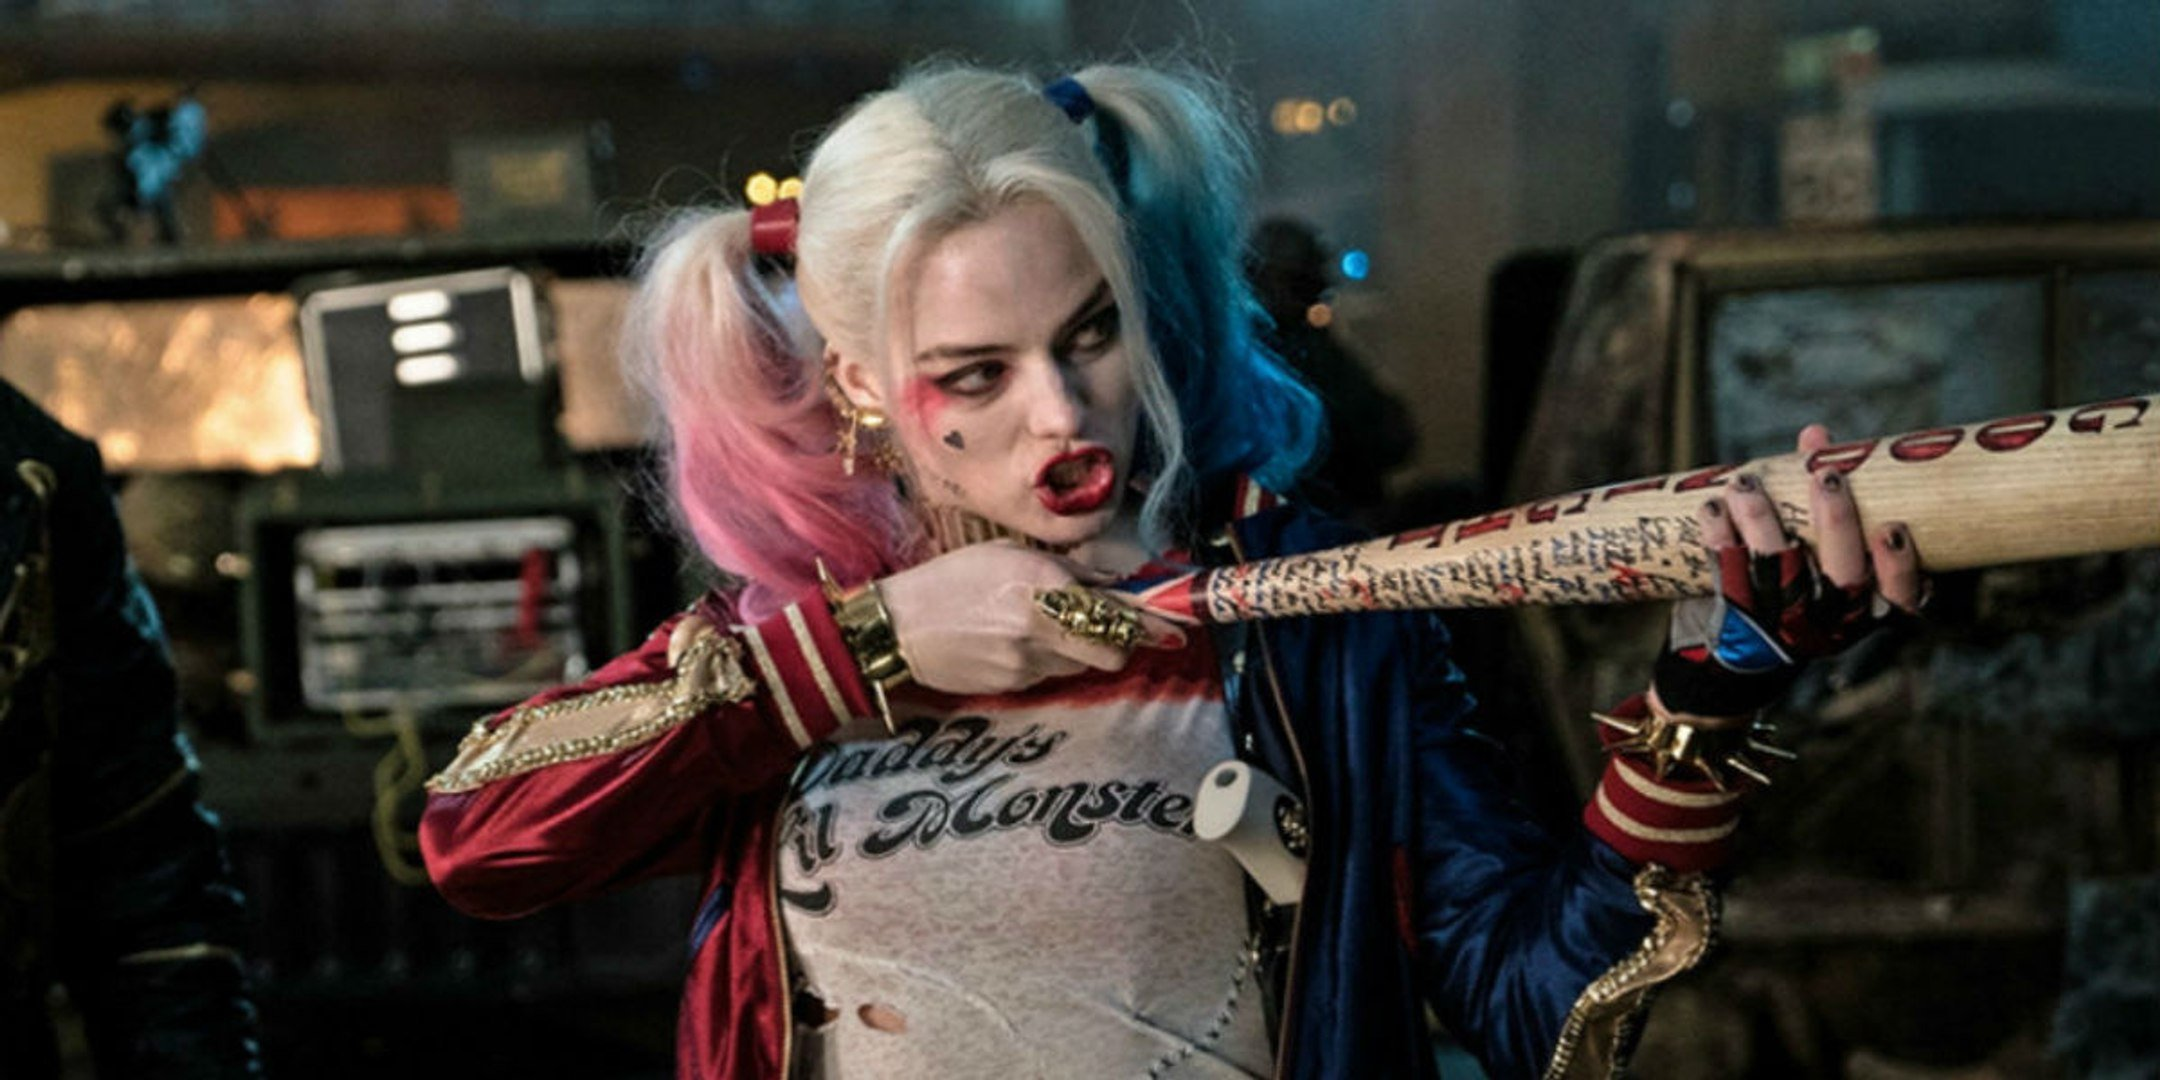 Harley Quinn and her bat back for James Gunn's The Suicide Squad.